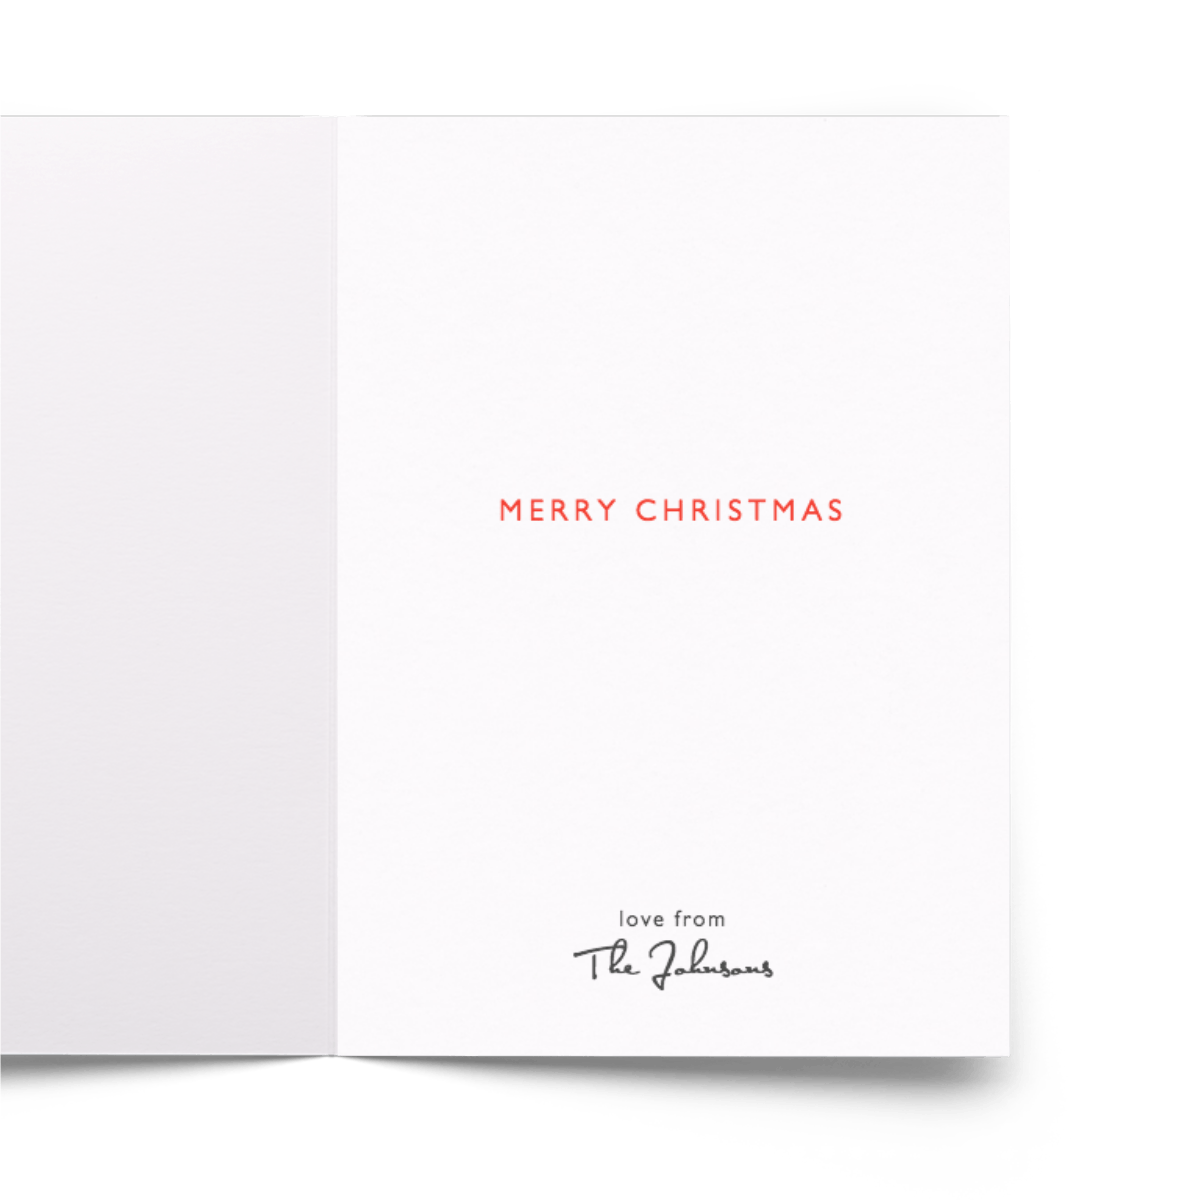 Https%3a%2f%2fwww.papier.com%2fproduct image%2f29658%2f19%2fholiday cheers 7476 inside 1541422083.png?ixlib=rb 1.1